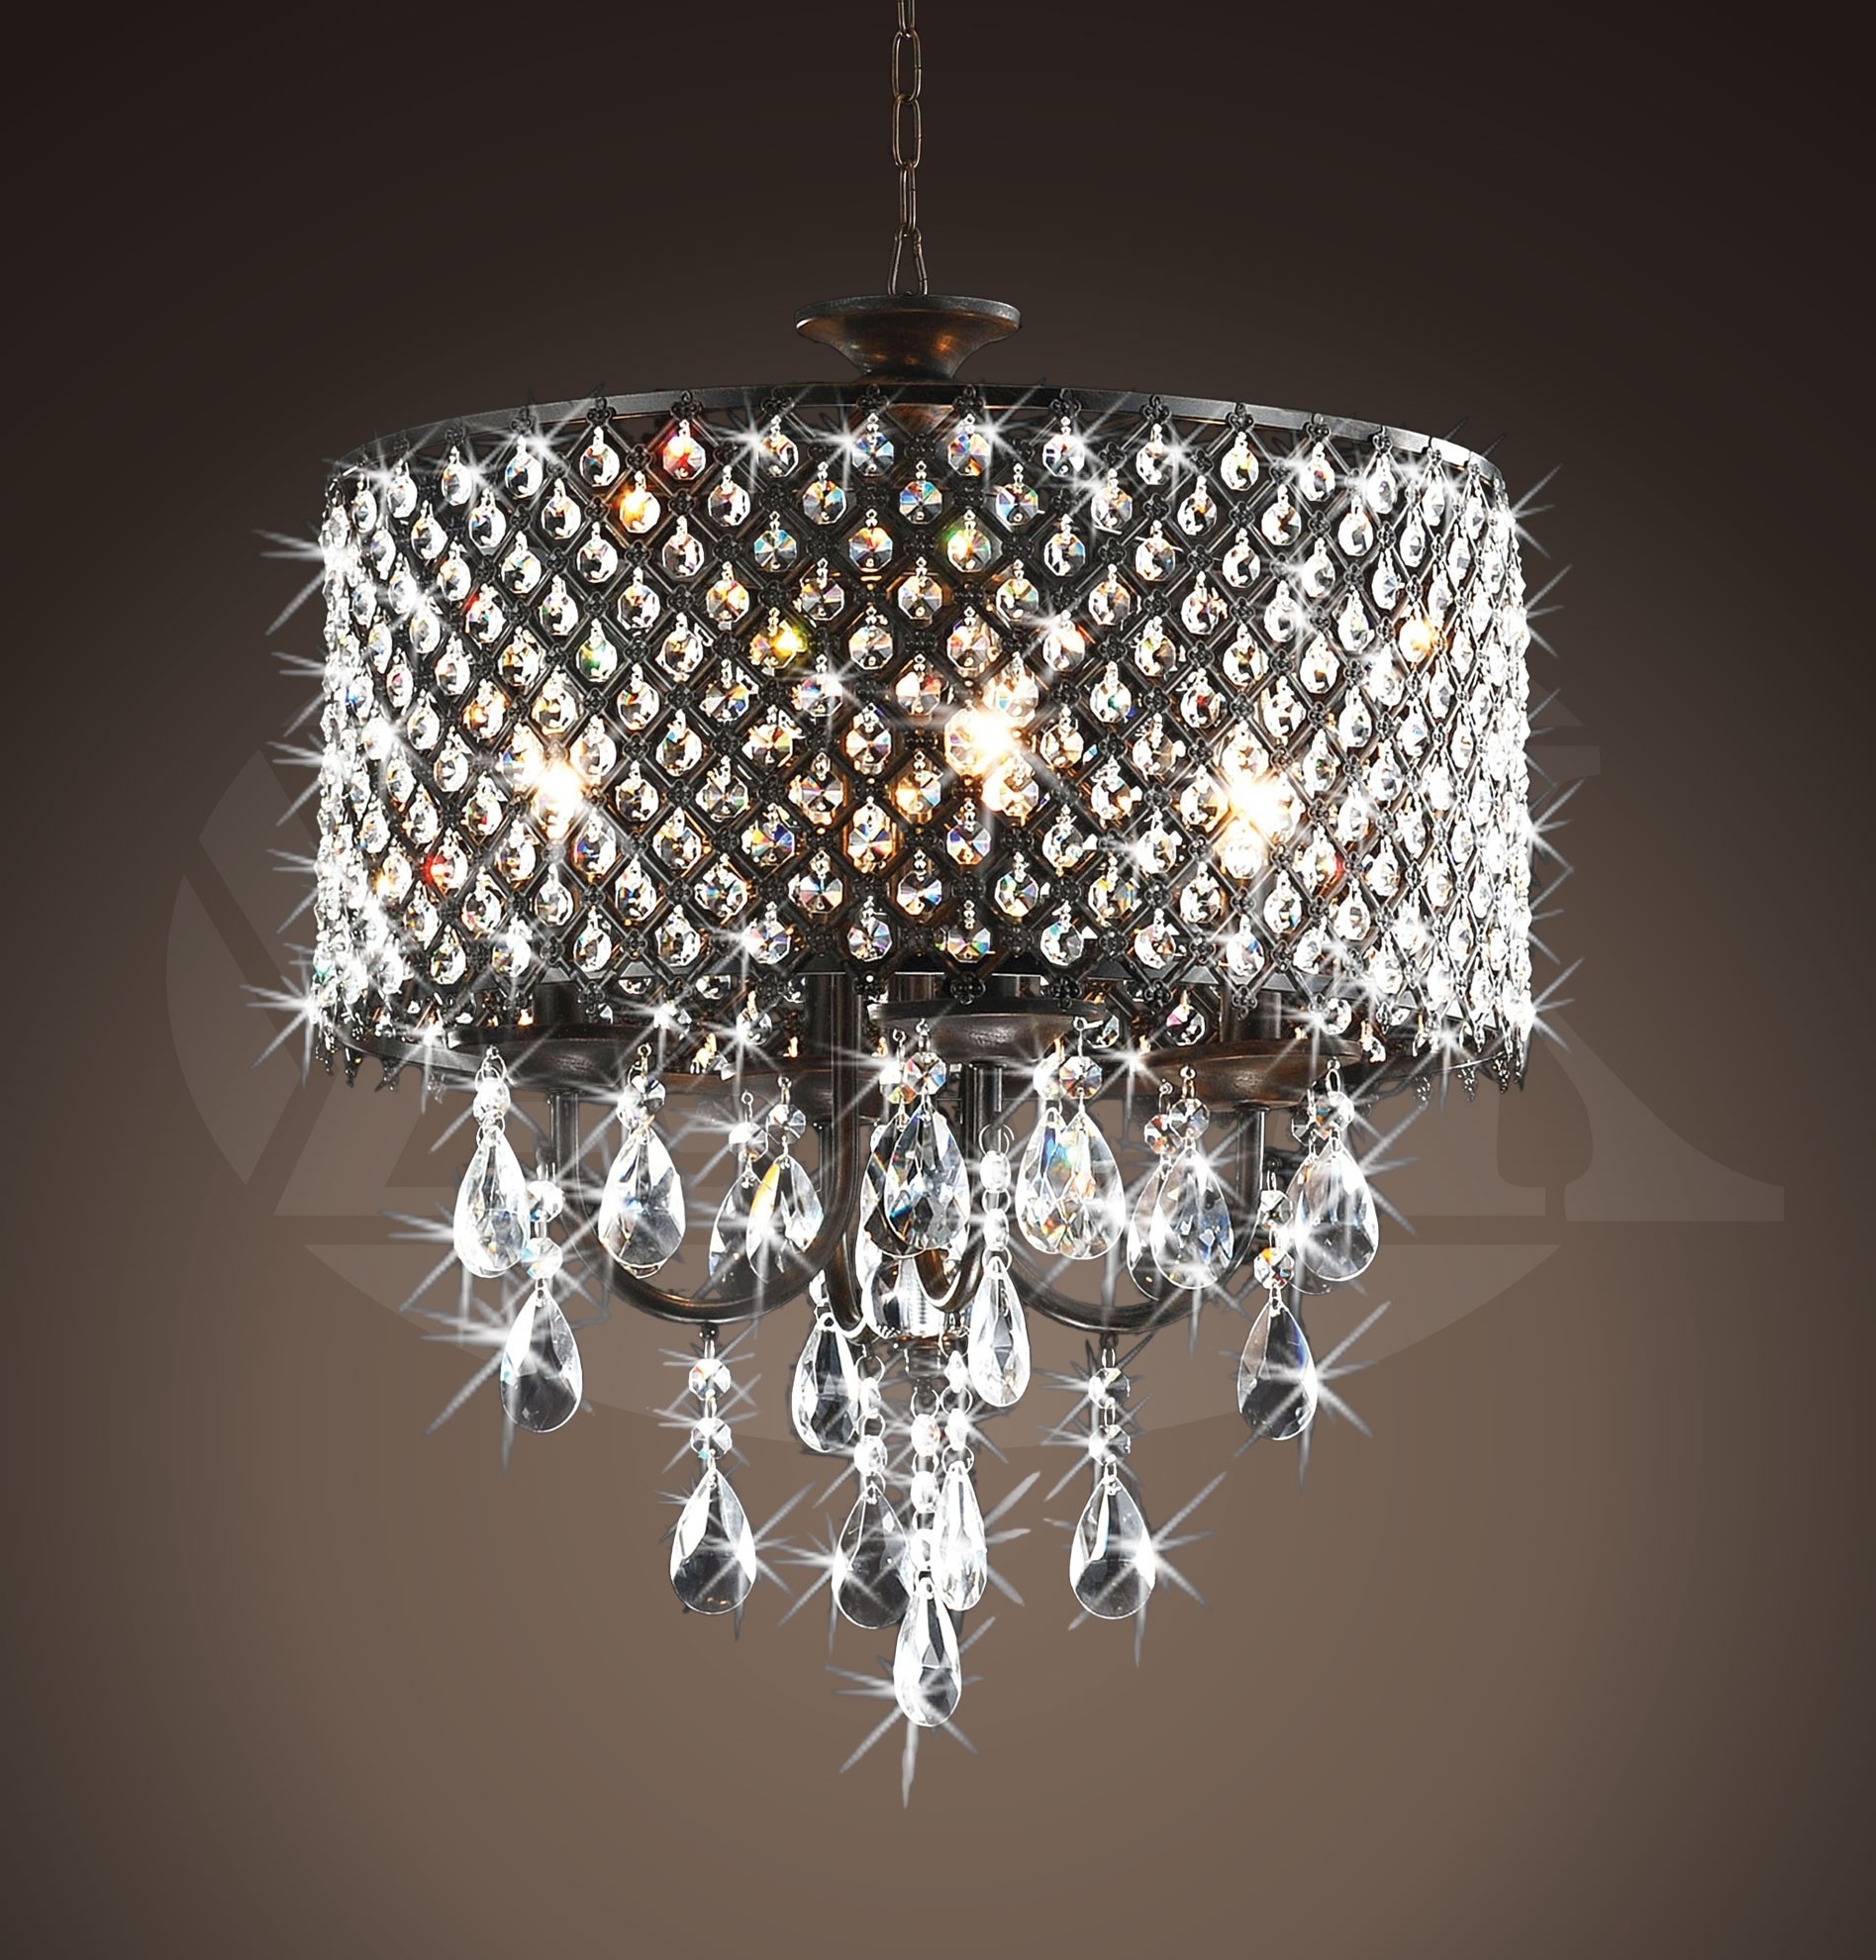 Bronze And Crystal Chandeliers In Best And Newest Rachelle 4 Light Round Antique Bronze Brass Crystal Chandelier (View 8 of 15)